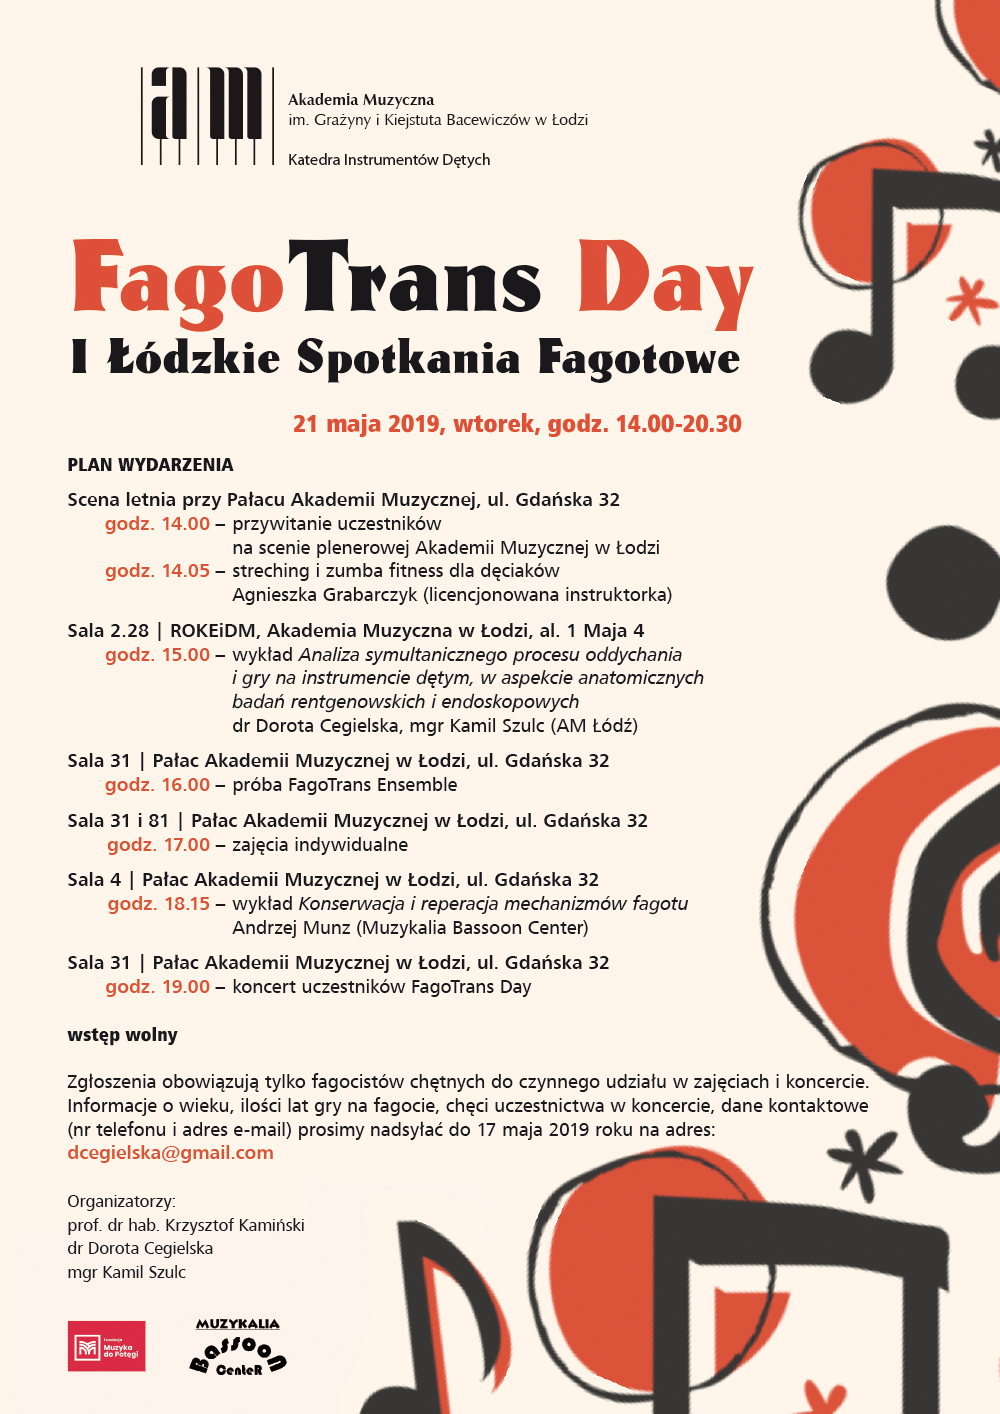 FagoTrans Day